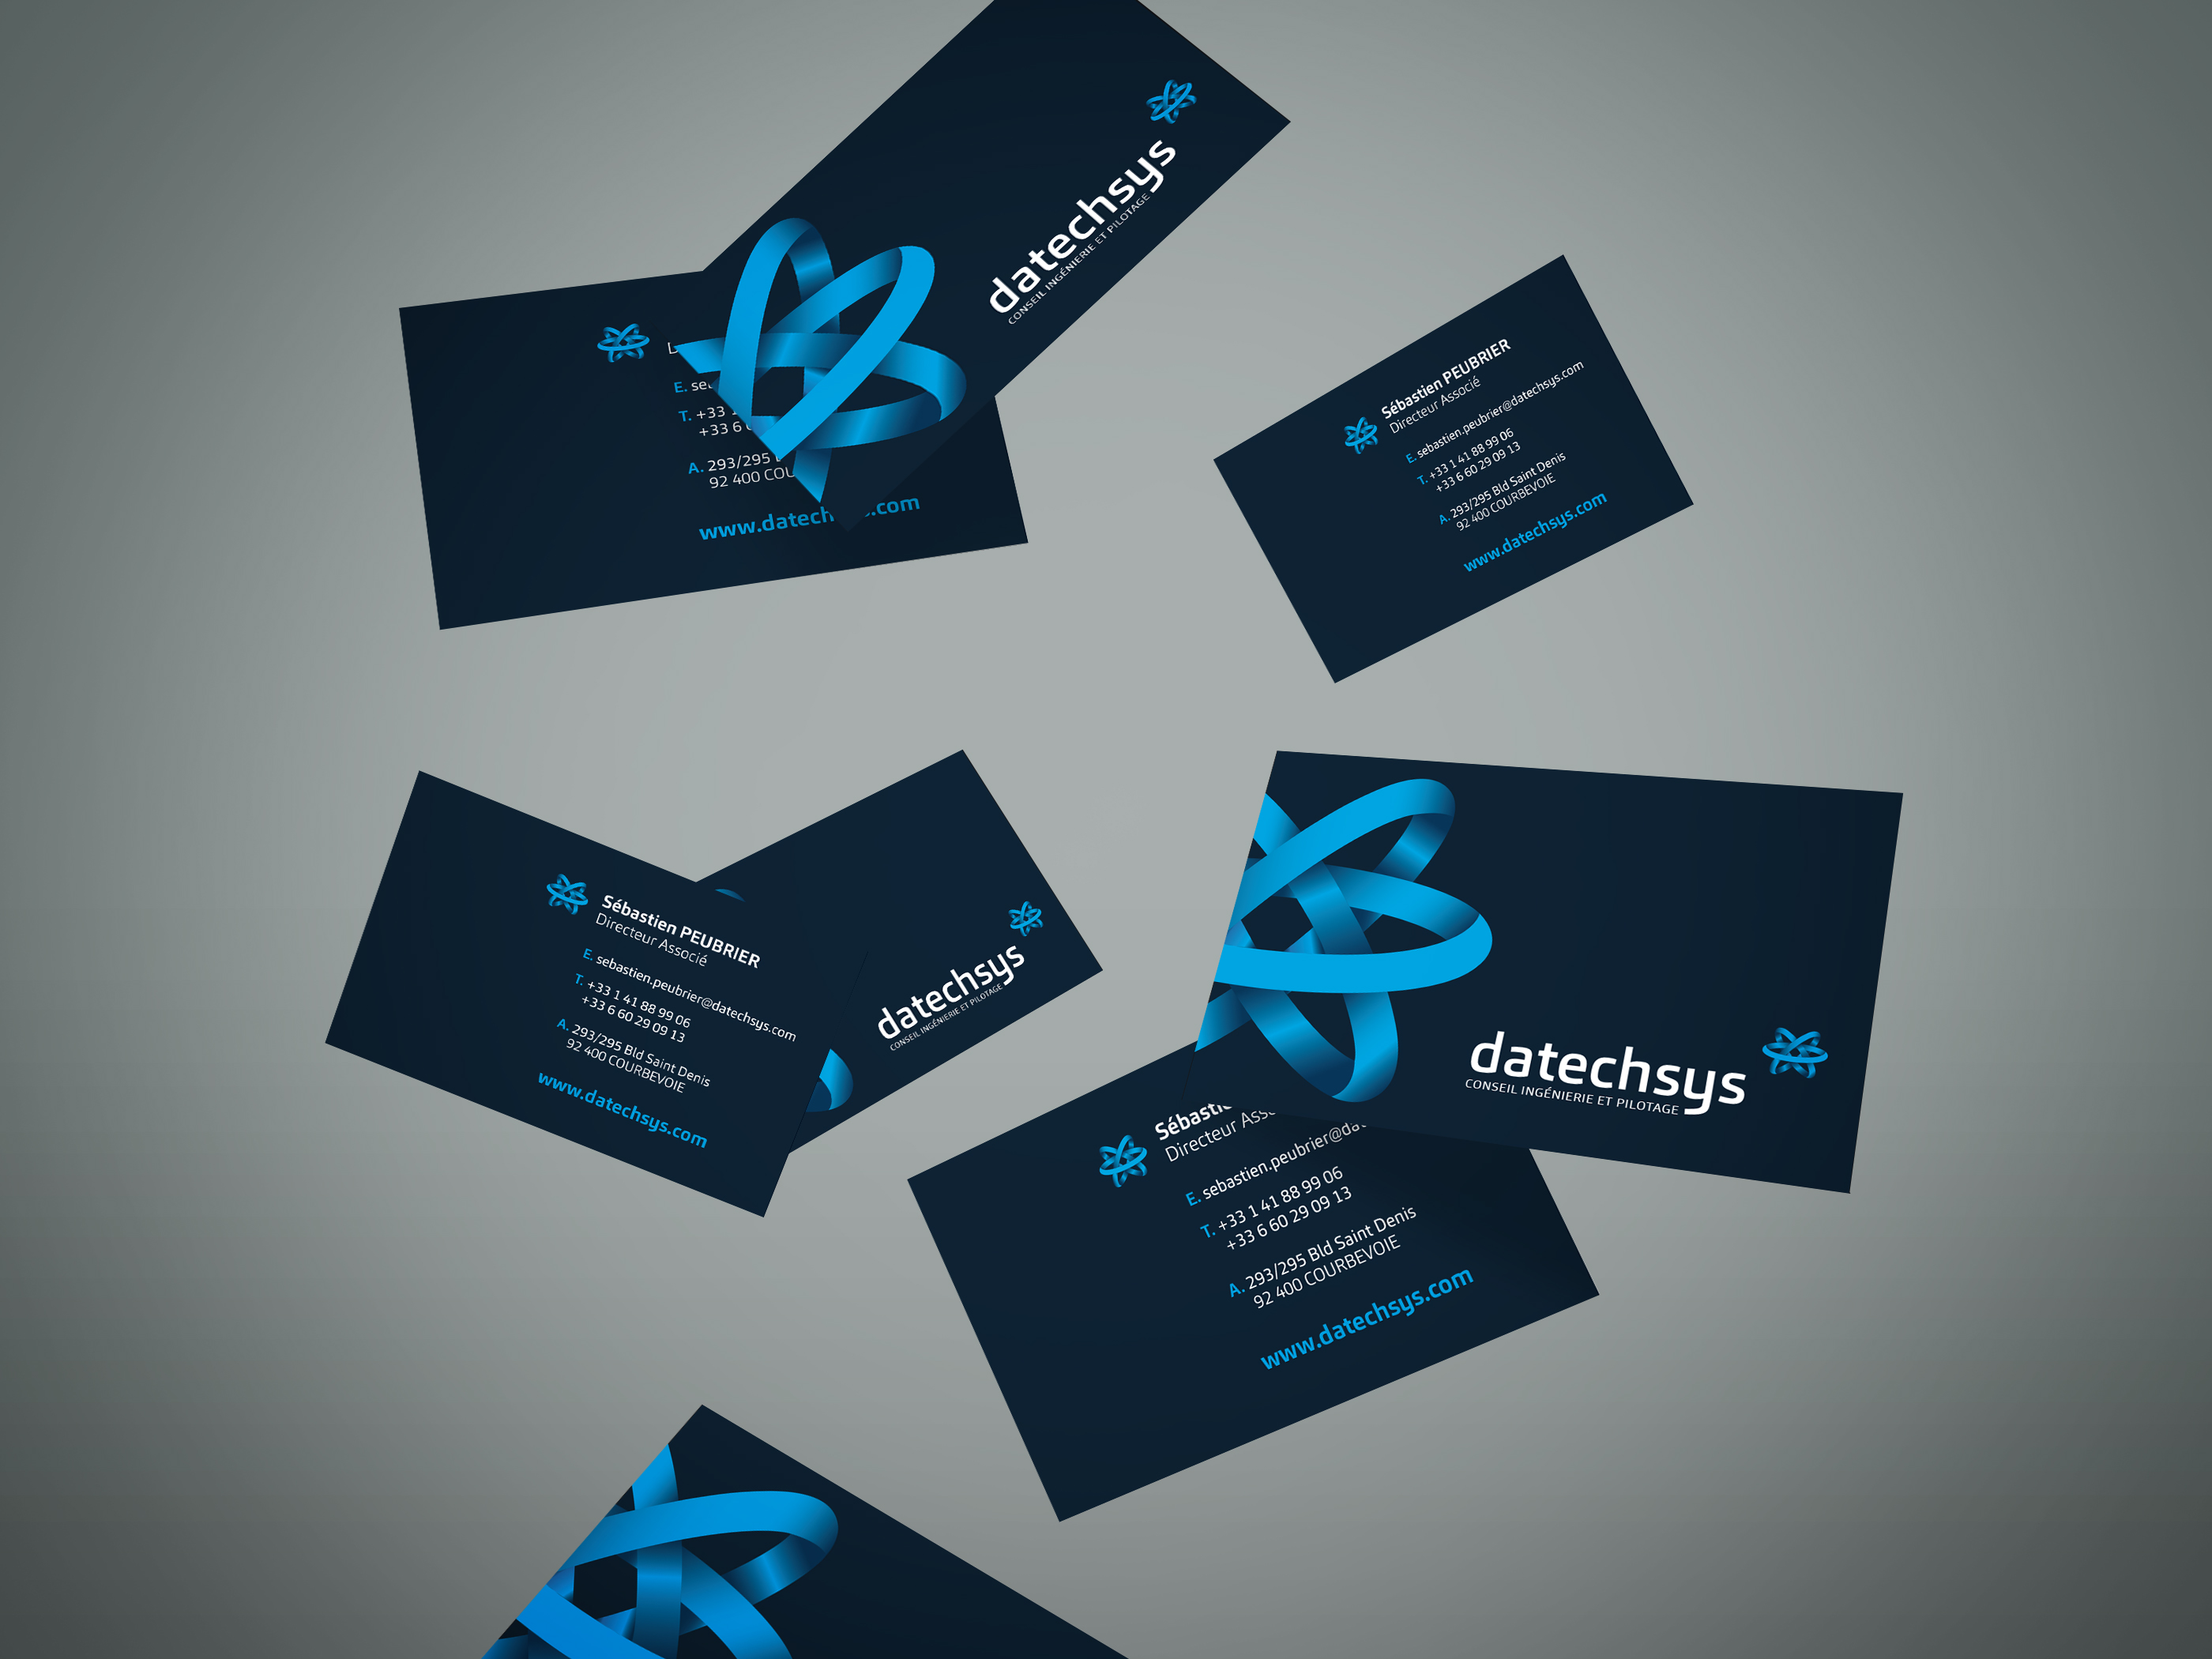 DATECHSYS 1